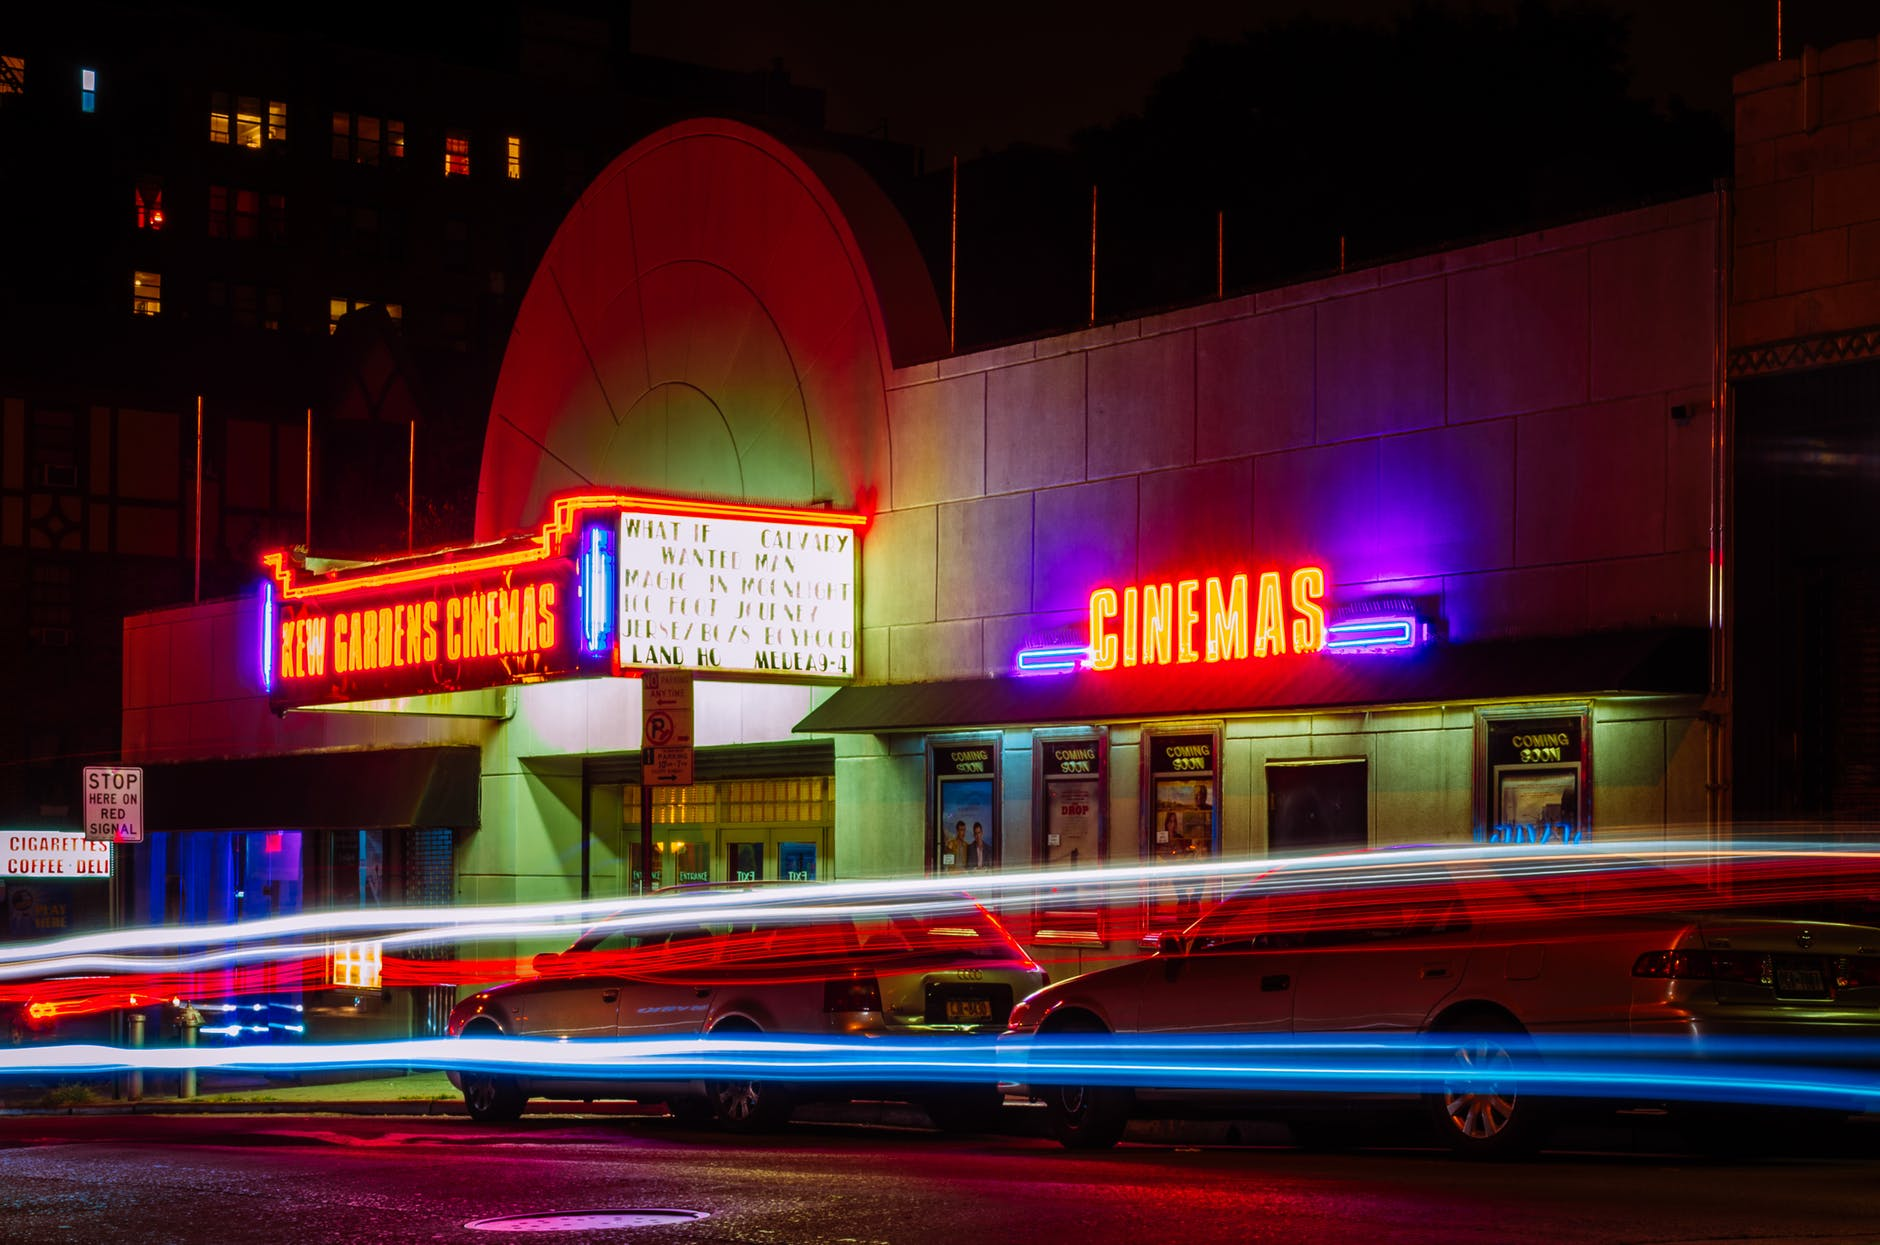 Photo of a 1980s style cinema